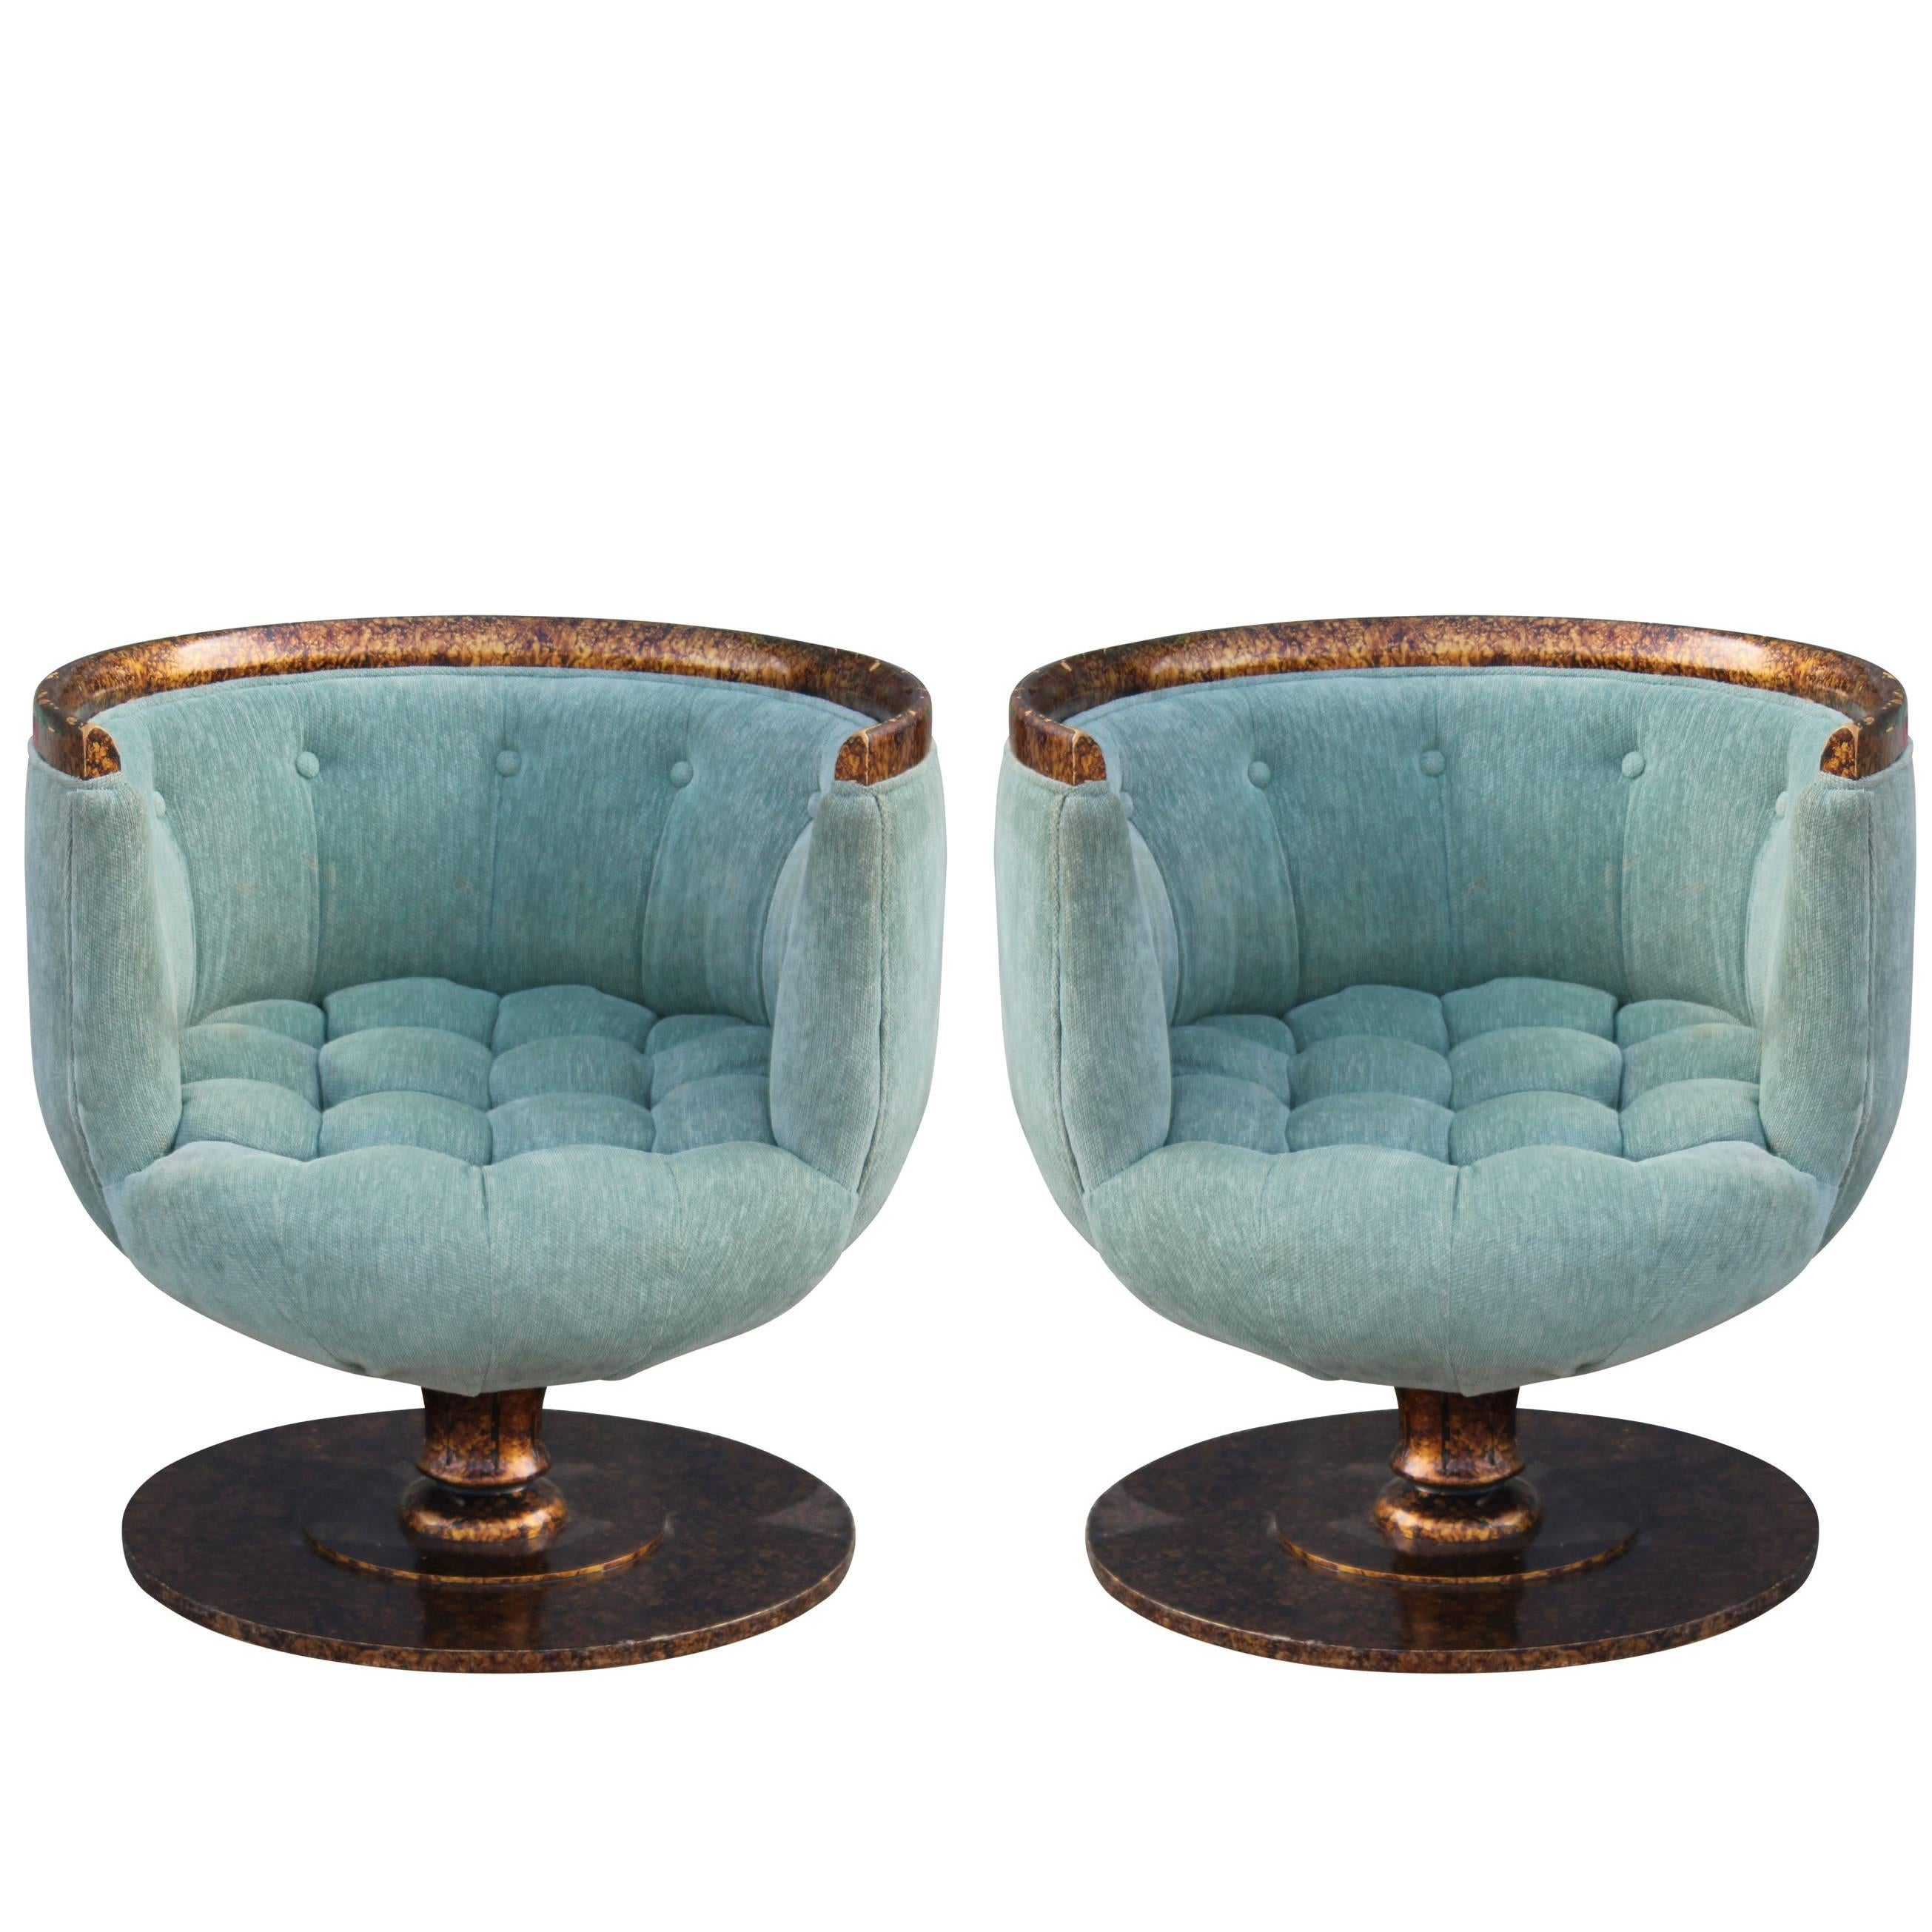 Pedestal Chair Pair Of Modern Barrel Back Swivel Pedestal Chairs In Blue With Tortoise Finish